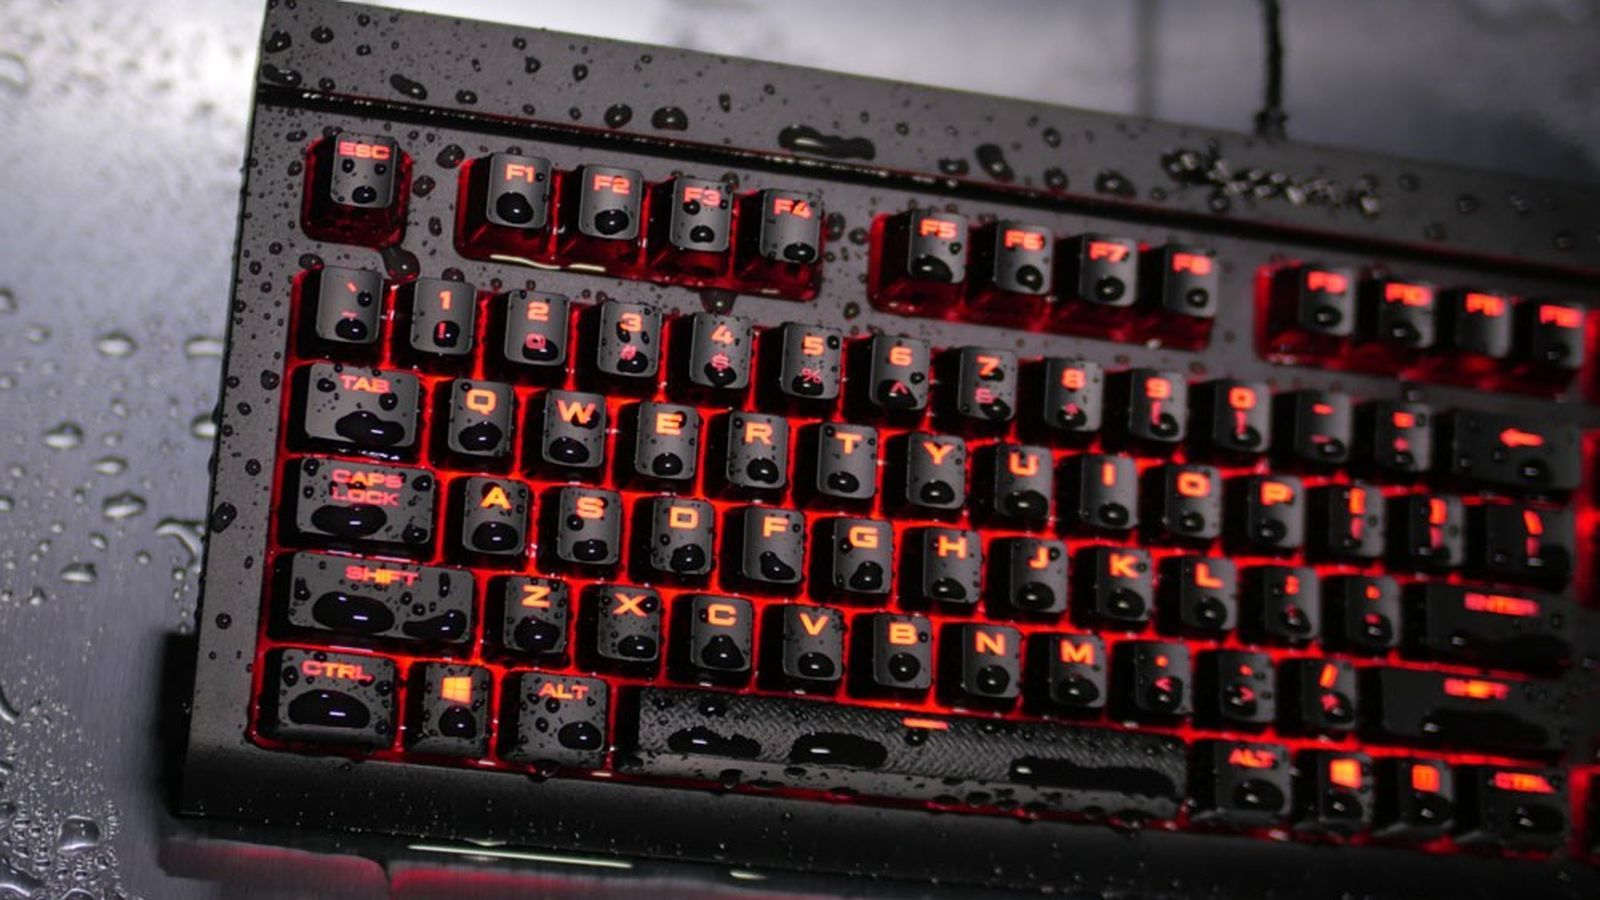 https://goo.gl/Bxrc2w Corsair releases a snack-proof gaming keyboard